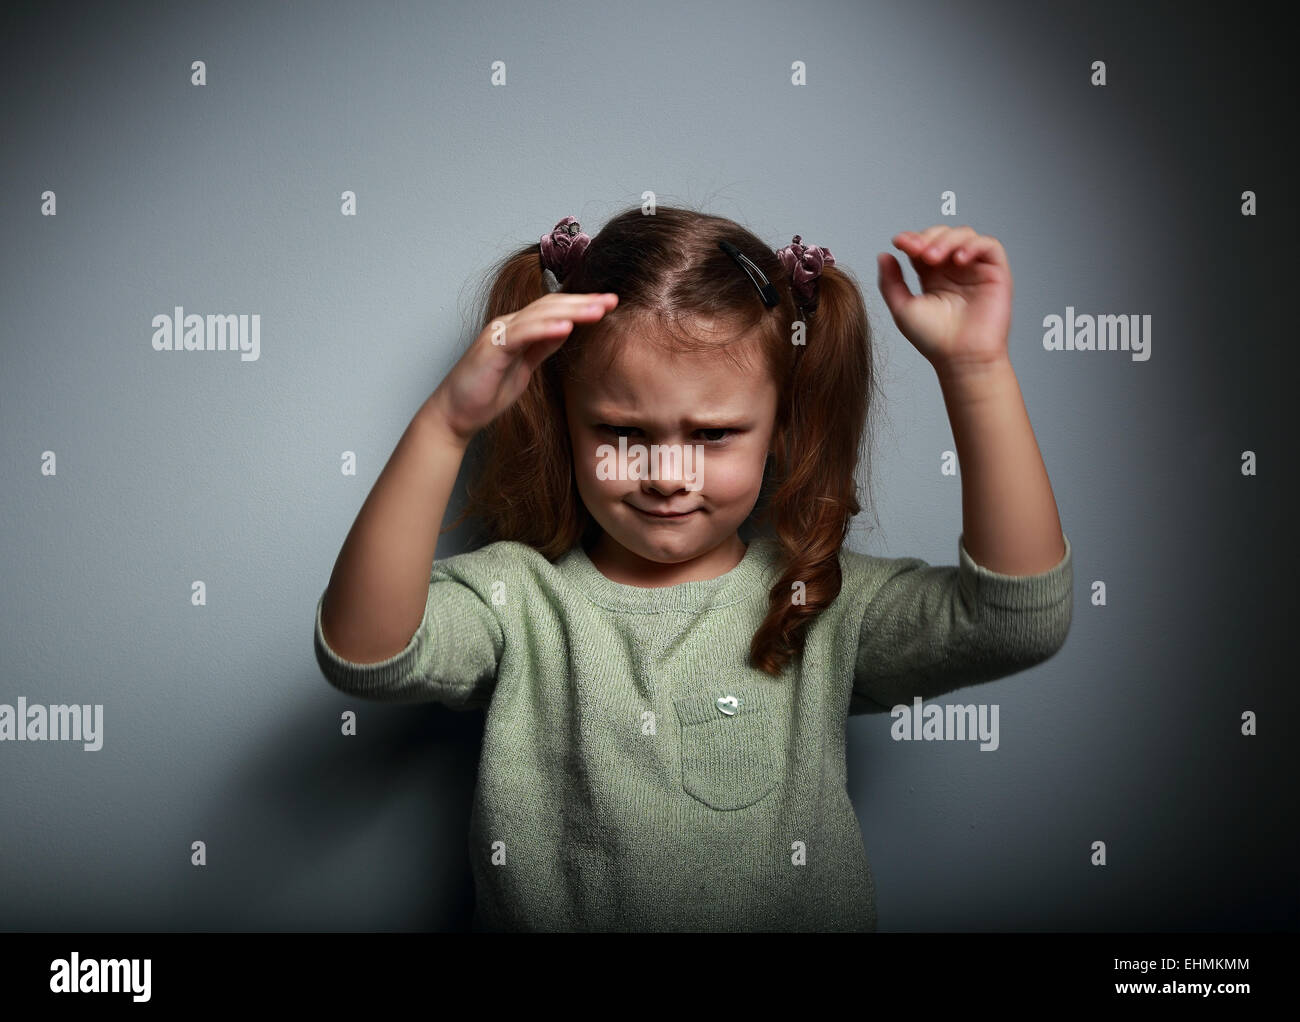 Angry kid girl moving the hands on dark background - Stock Image